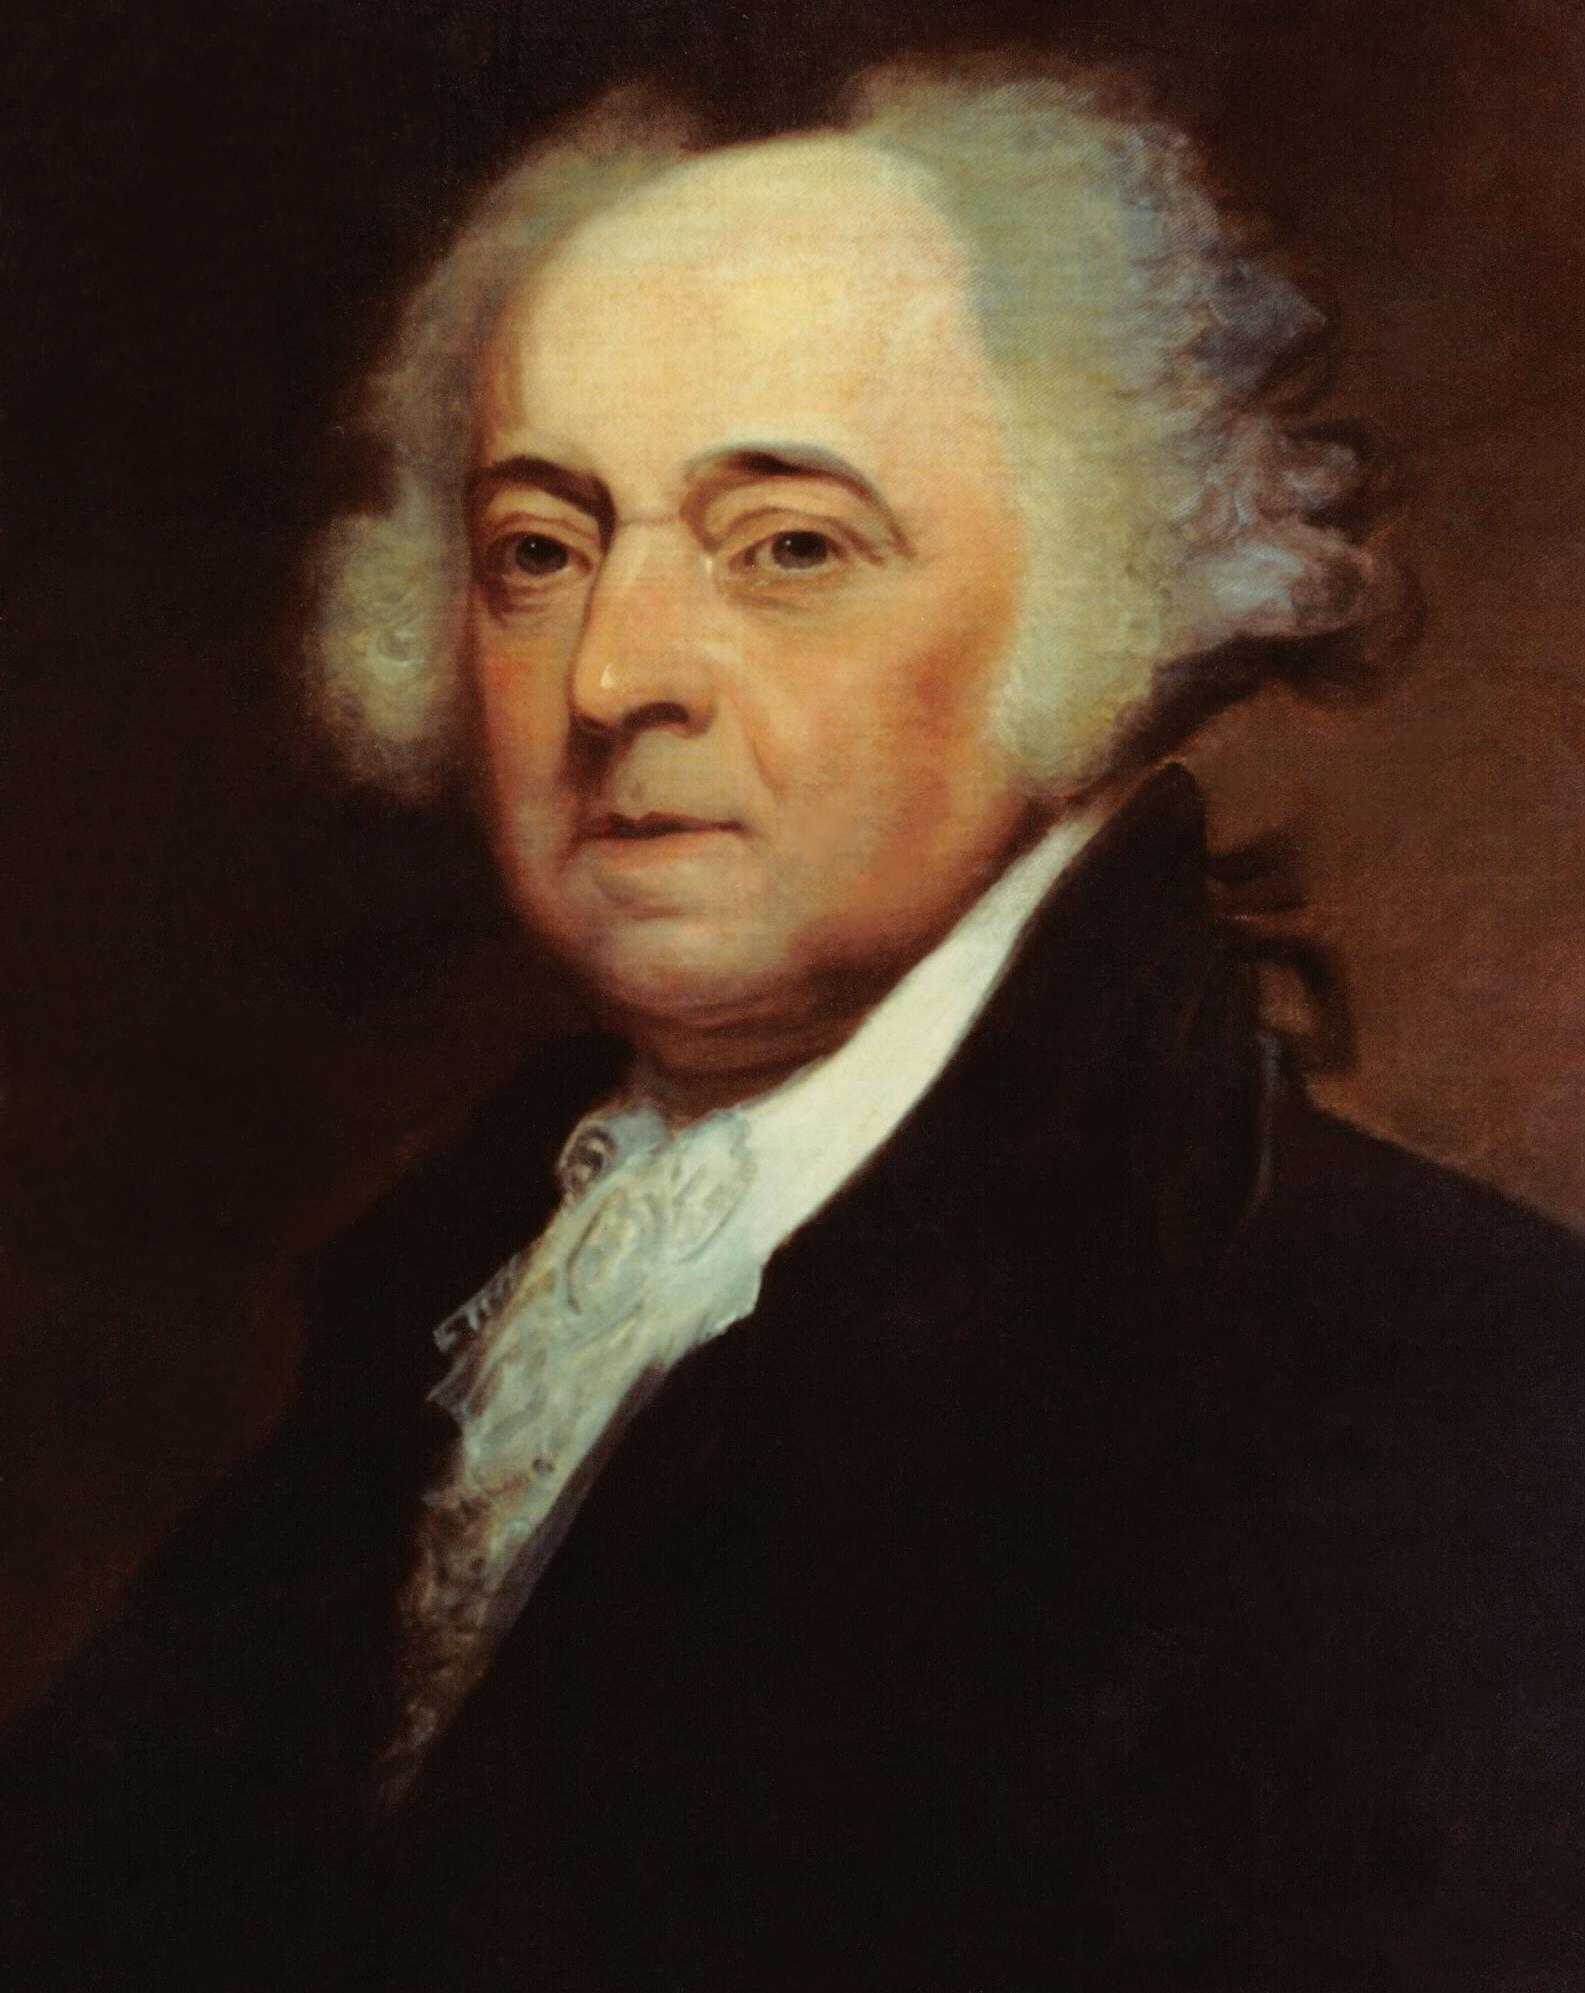 http://upload.wikimedia.org/wikipedia/commons/2/25/US_Navy_031029-N-6236G-001_A_painting_of_President_John_Adams_(1735-1826),_2nd_president_of_the_United_States,_by_Asher_B._Durand_(1767-1845)-crop.jpg